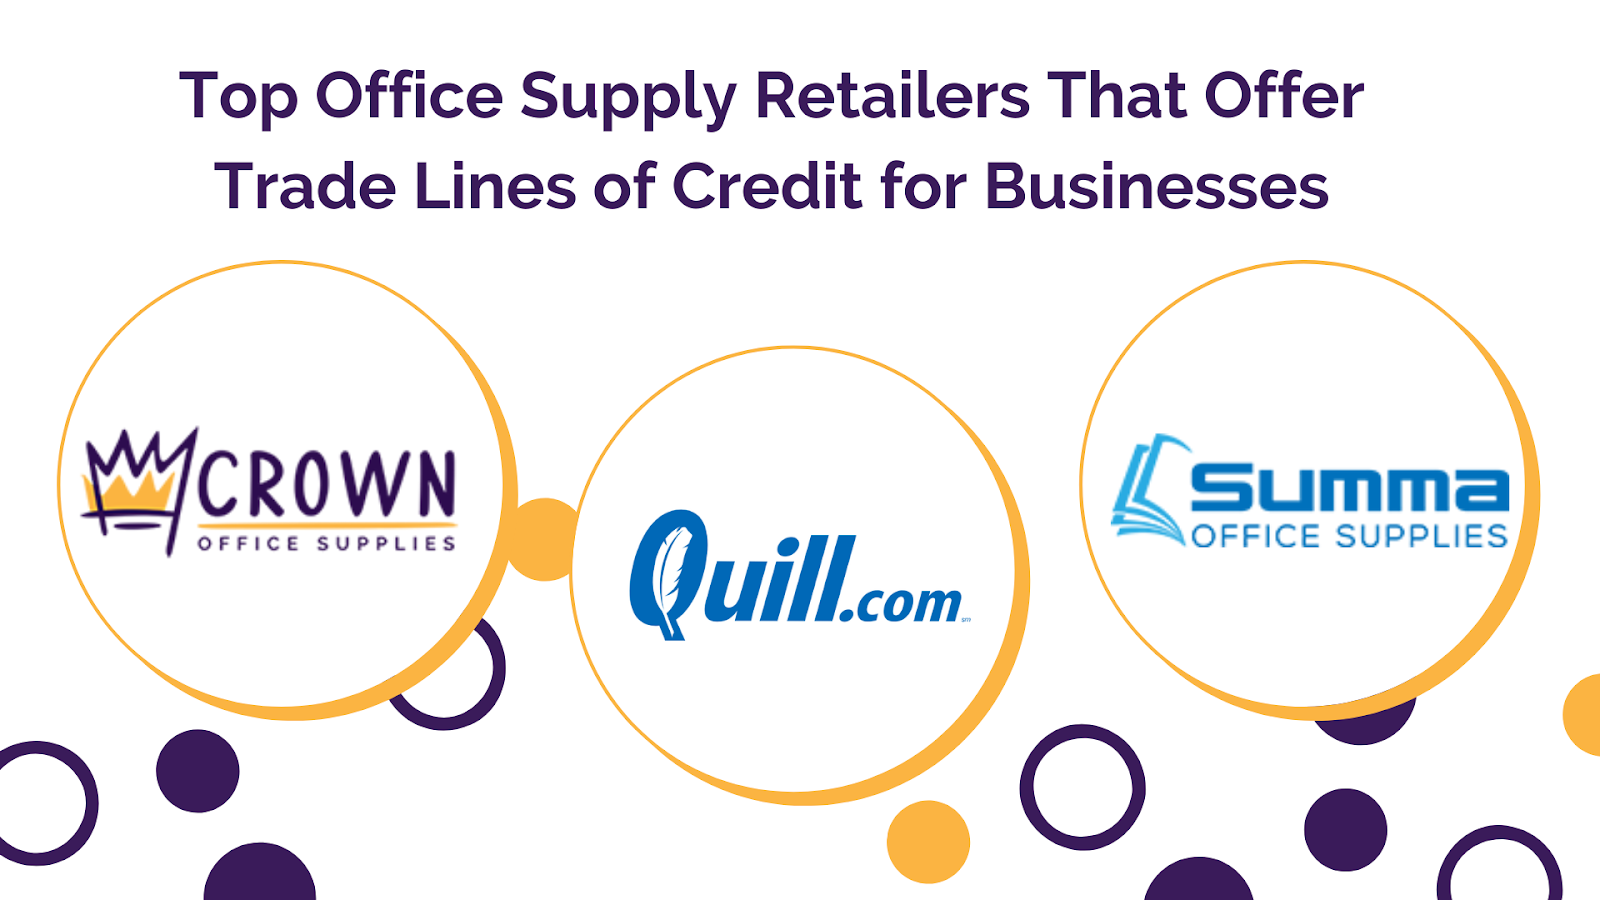 Net 30 Office Supply Retailers